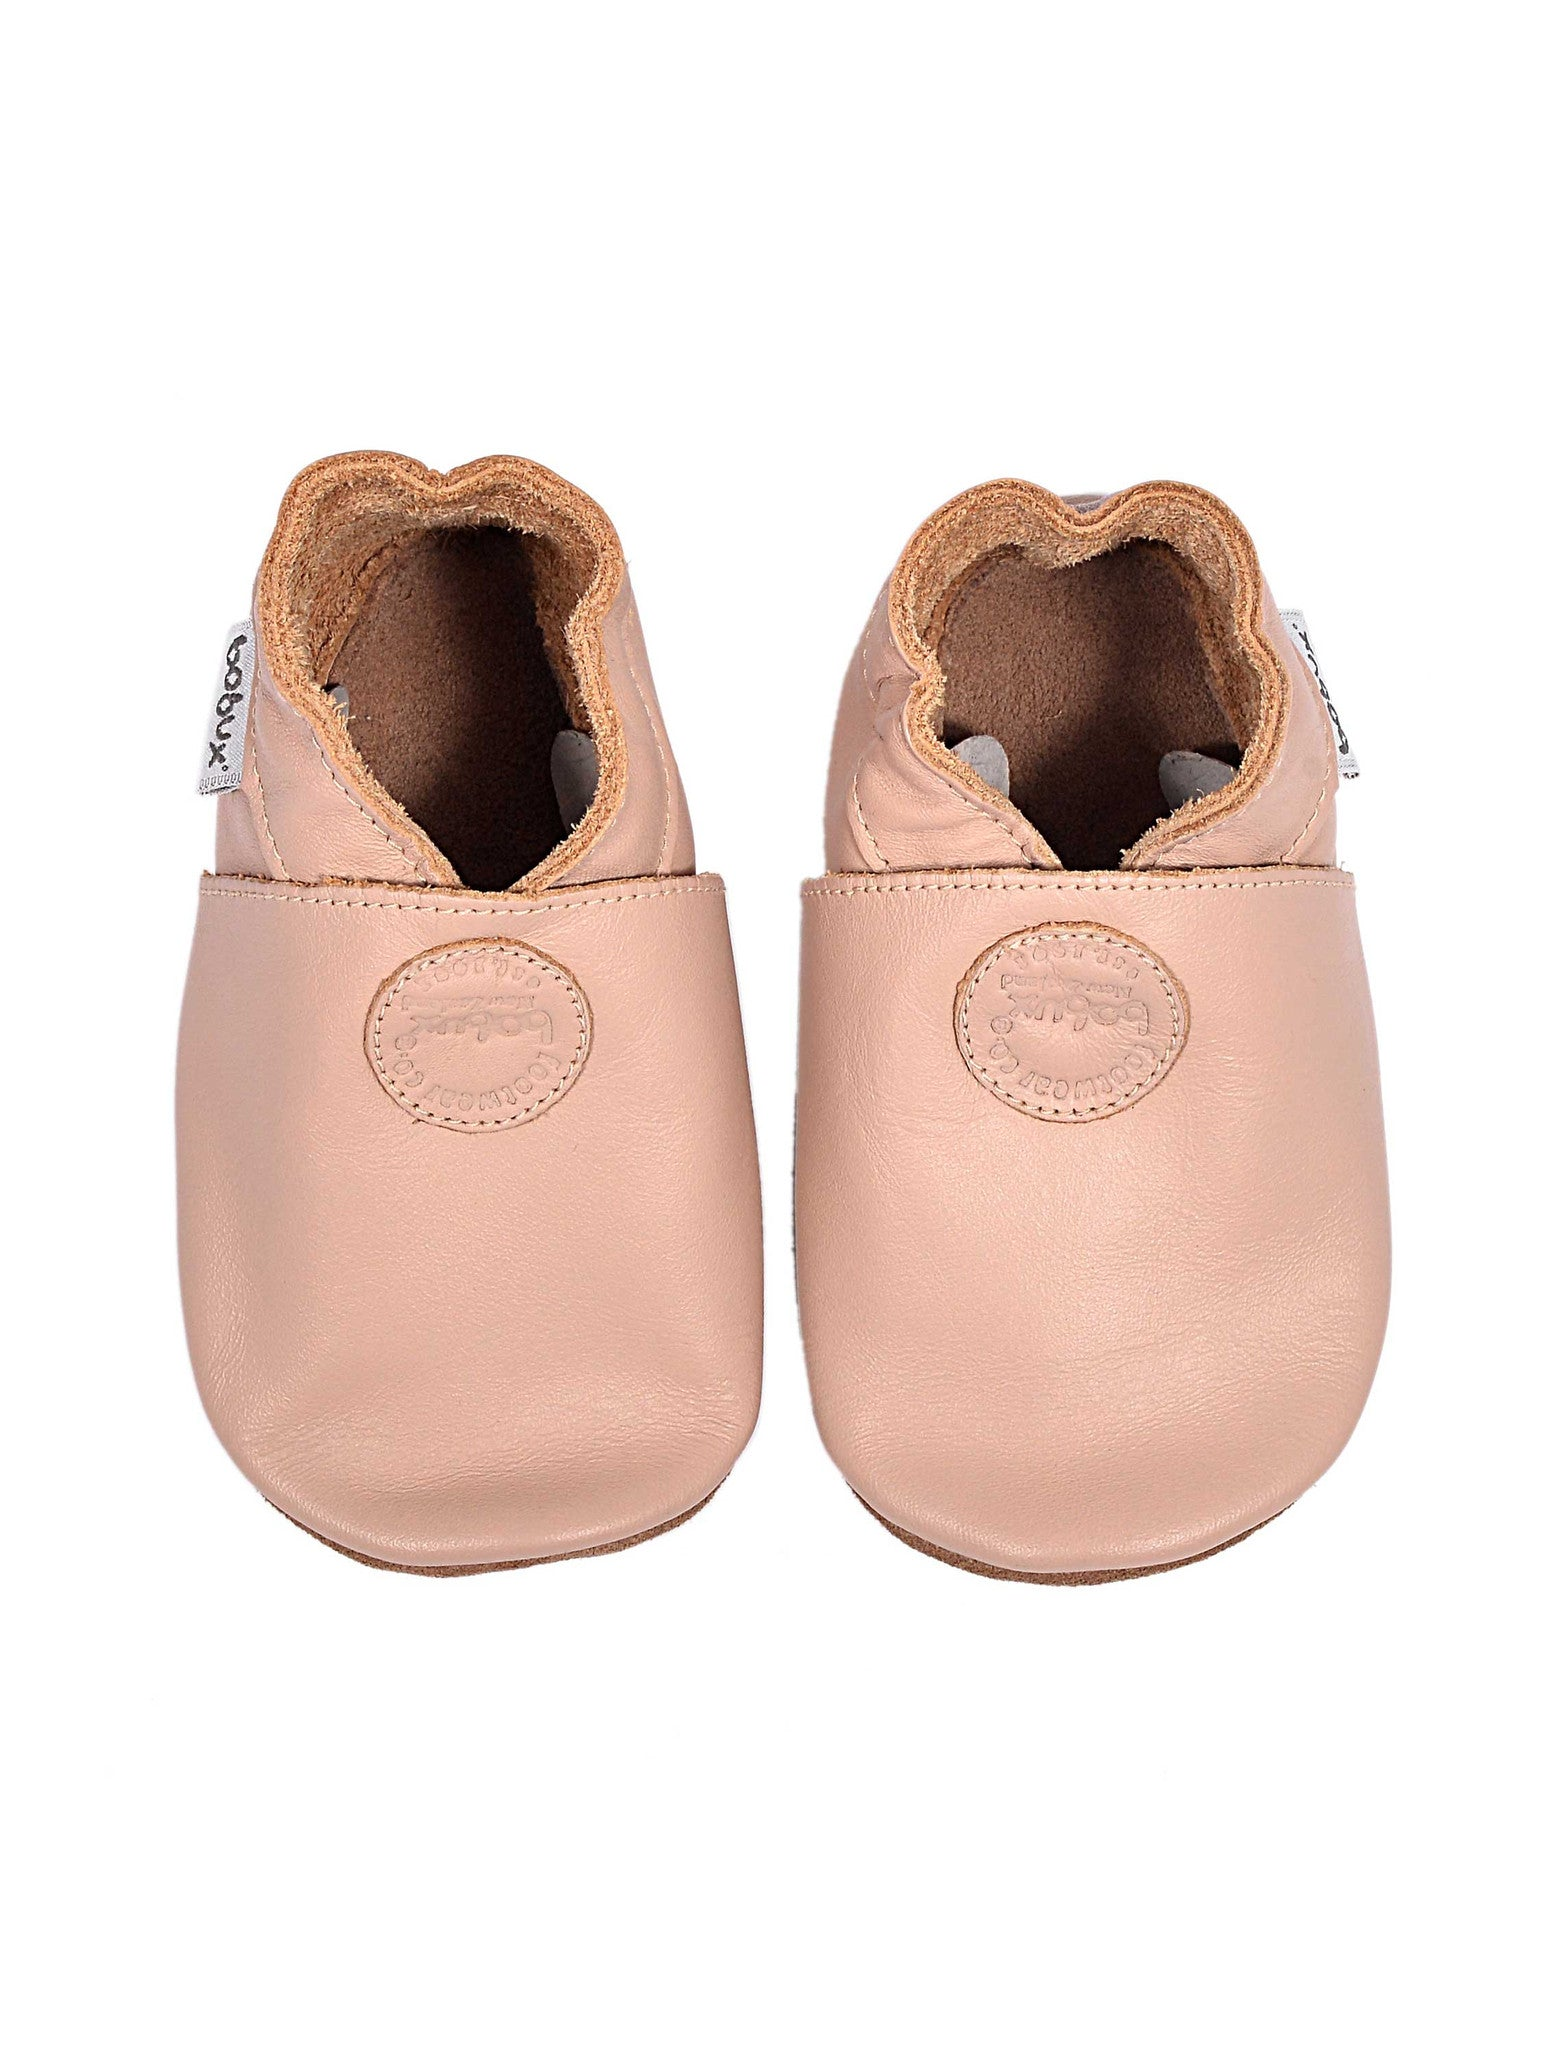 CLASSIC DOT SOFT SOLE - kidsstyleforless